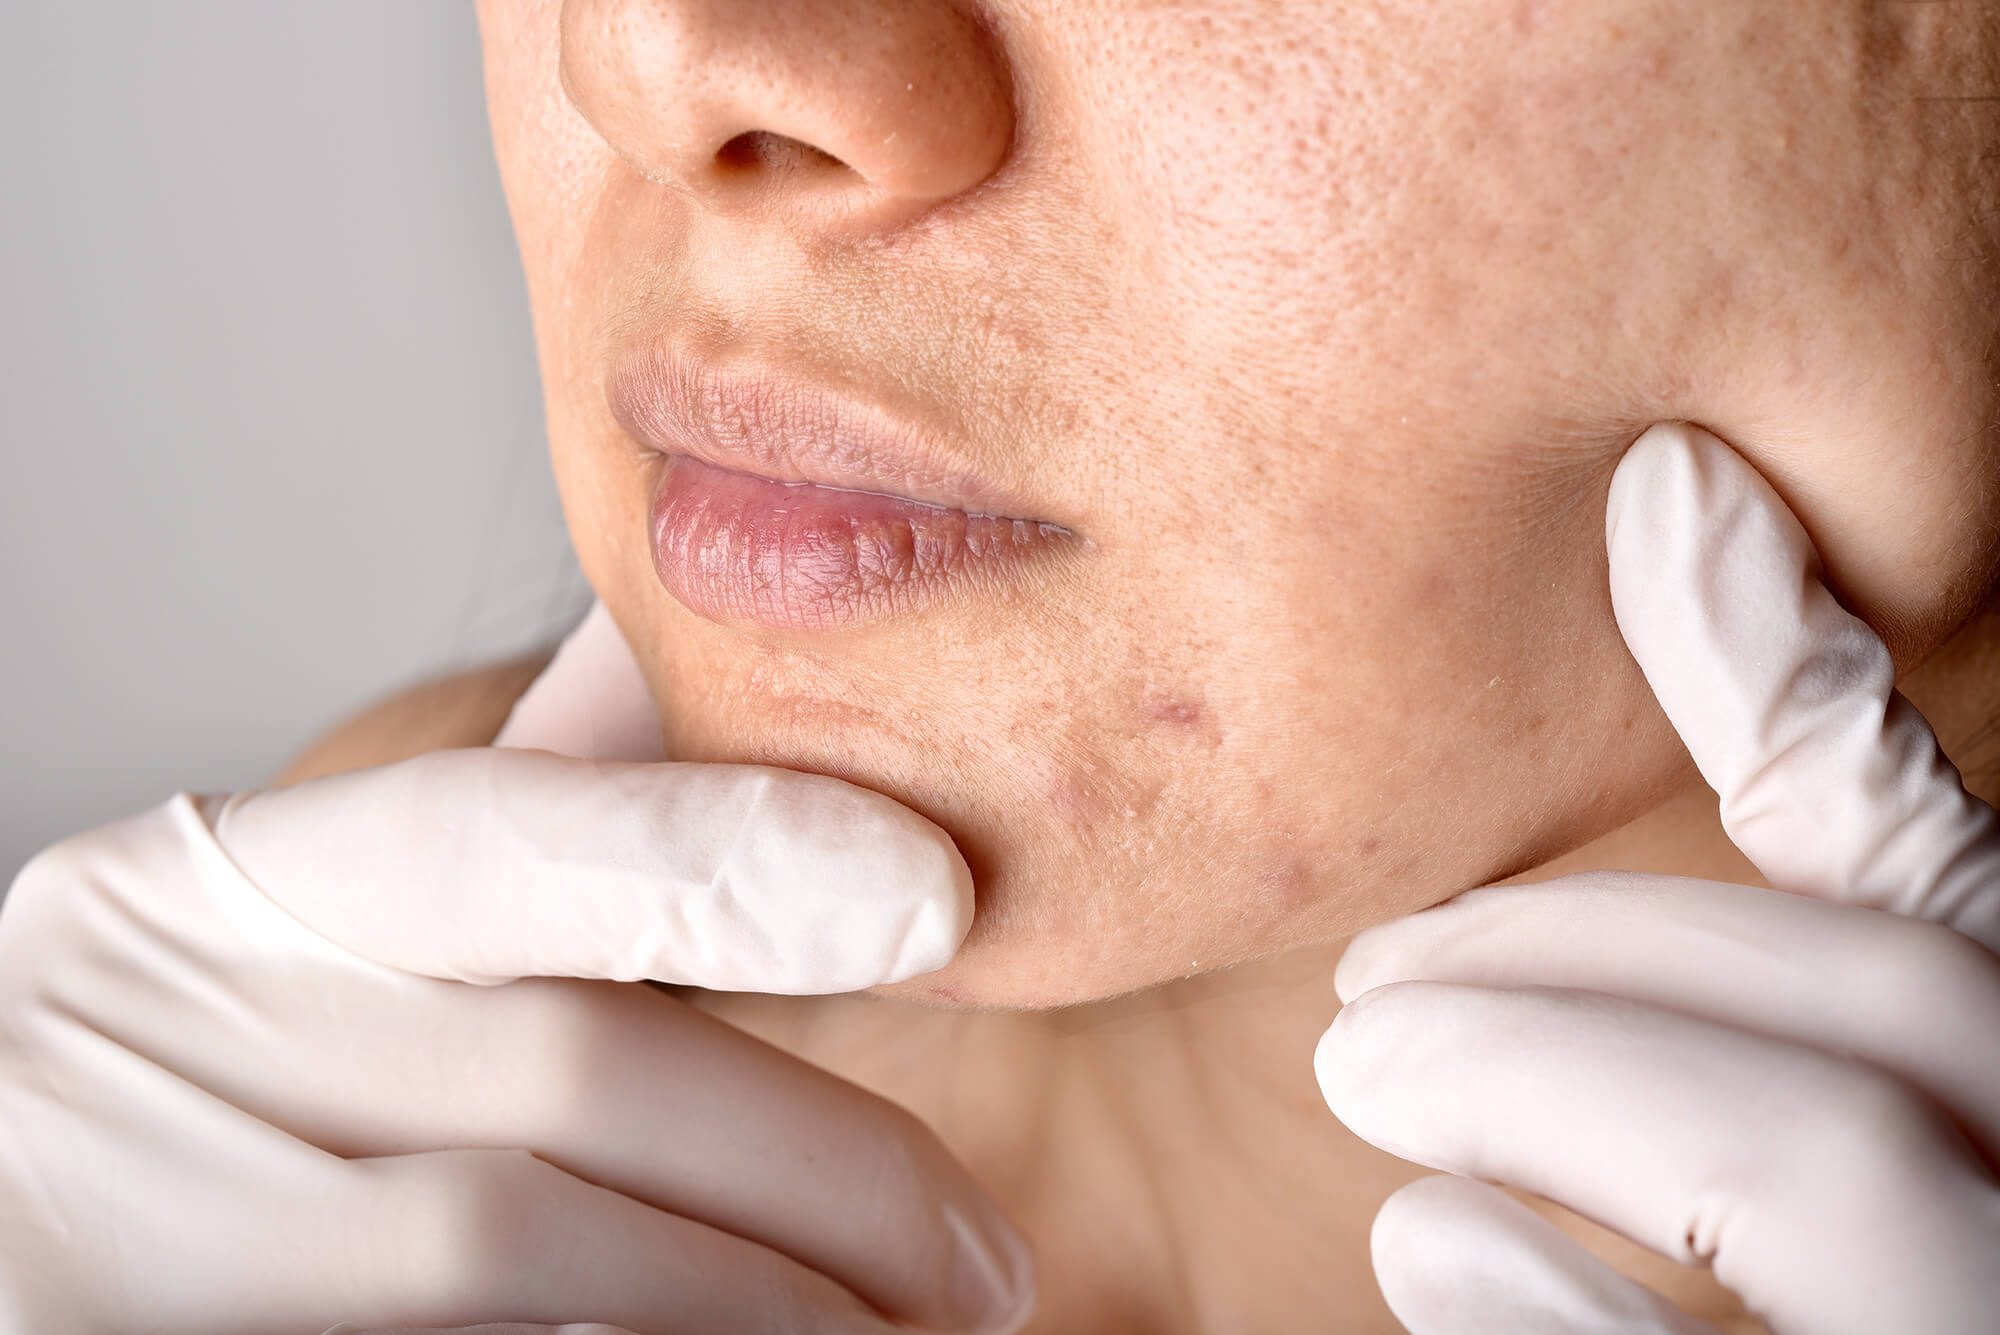 сan a dermatologist help with acne